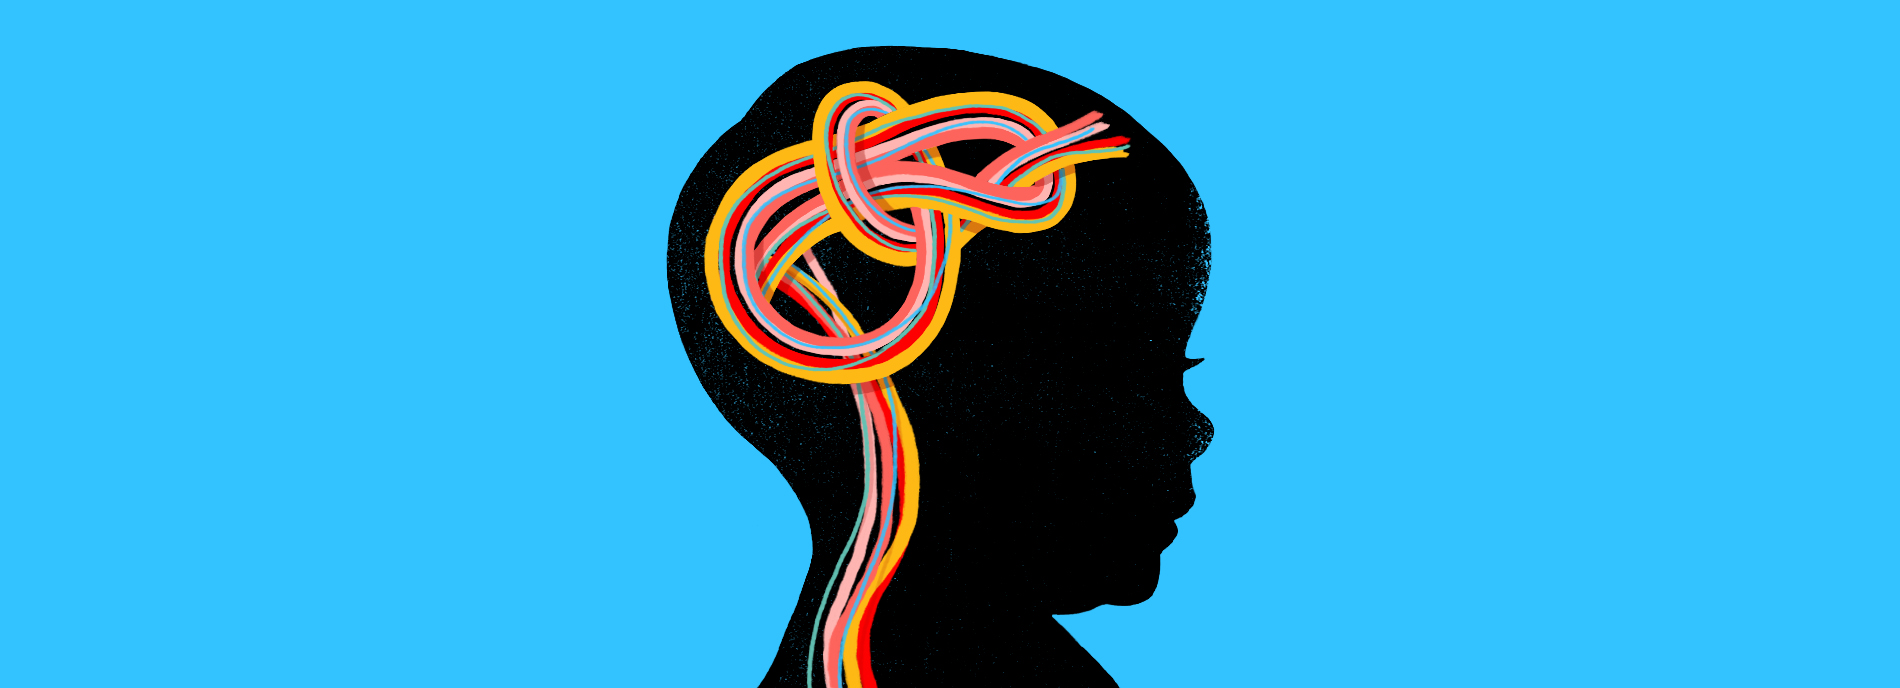 Illustration of child's silhouette with brain as a colorful knot.